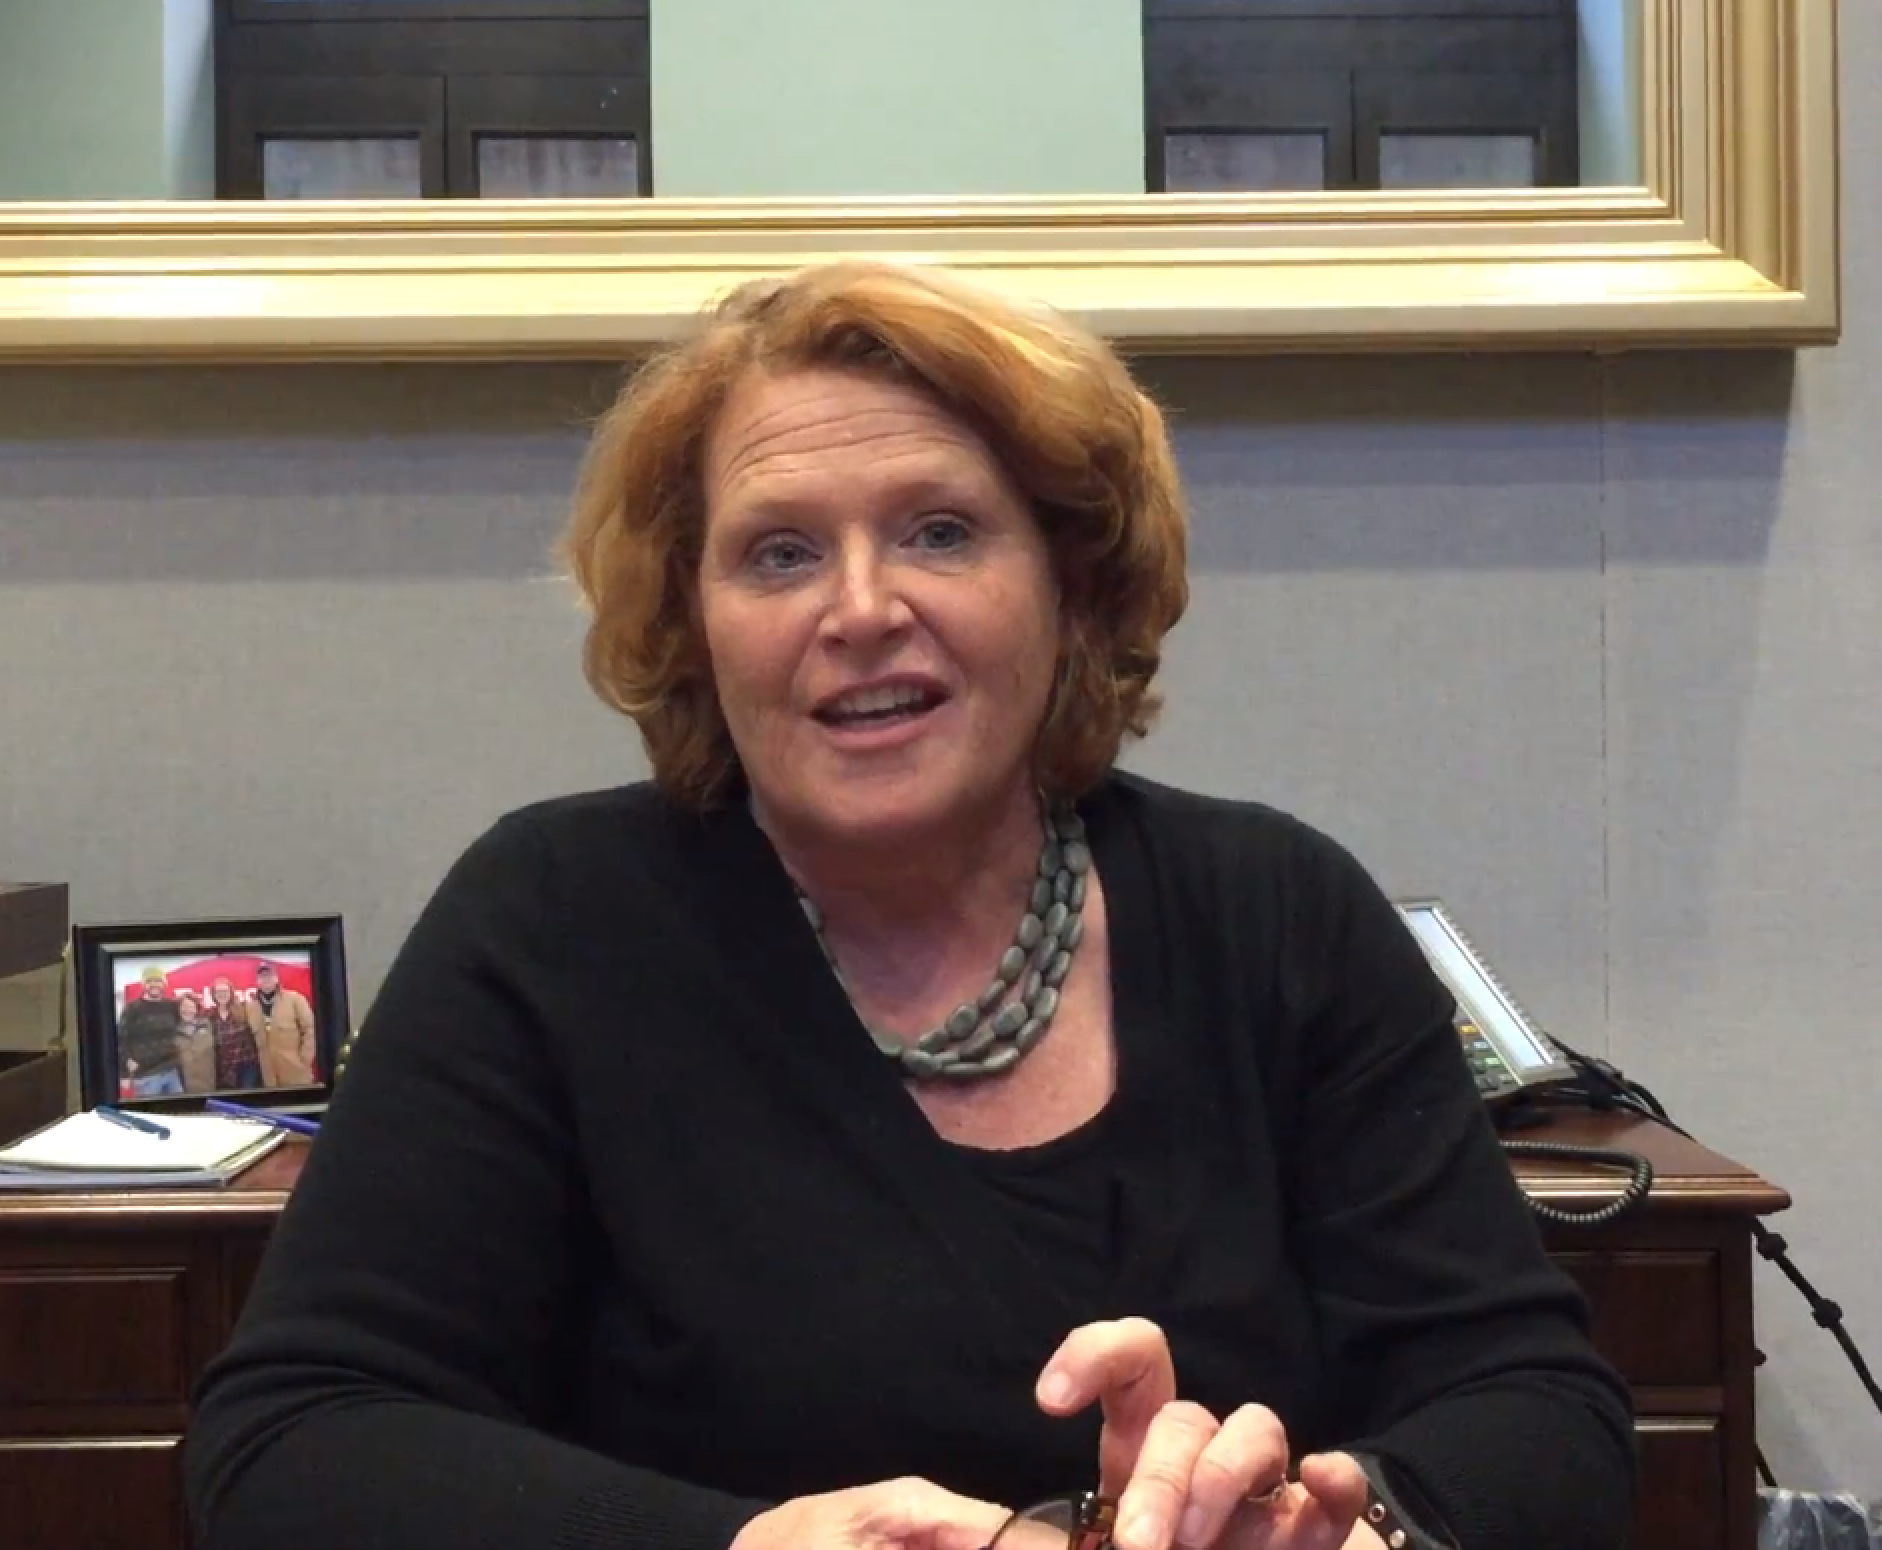 Sen. Heidi Heitkamp, Statement via webcast, Dec. 16, 2015